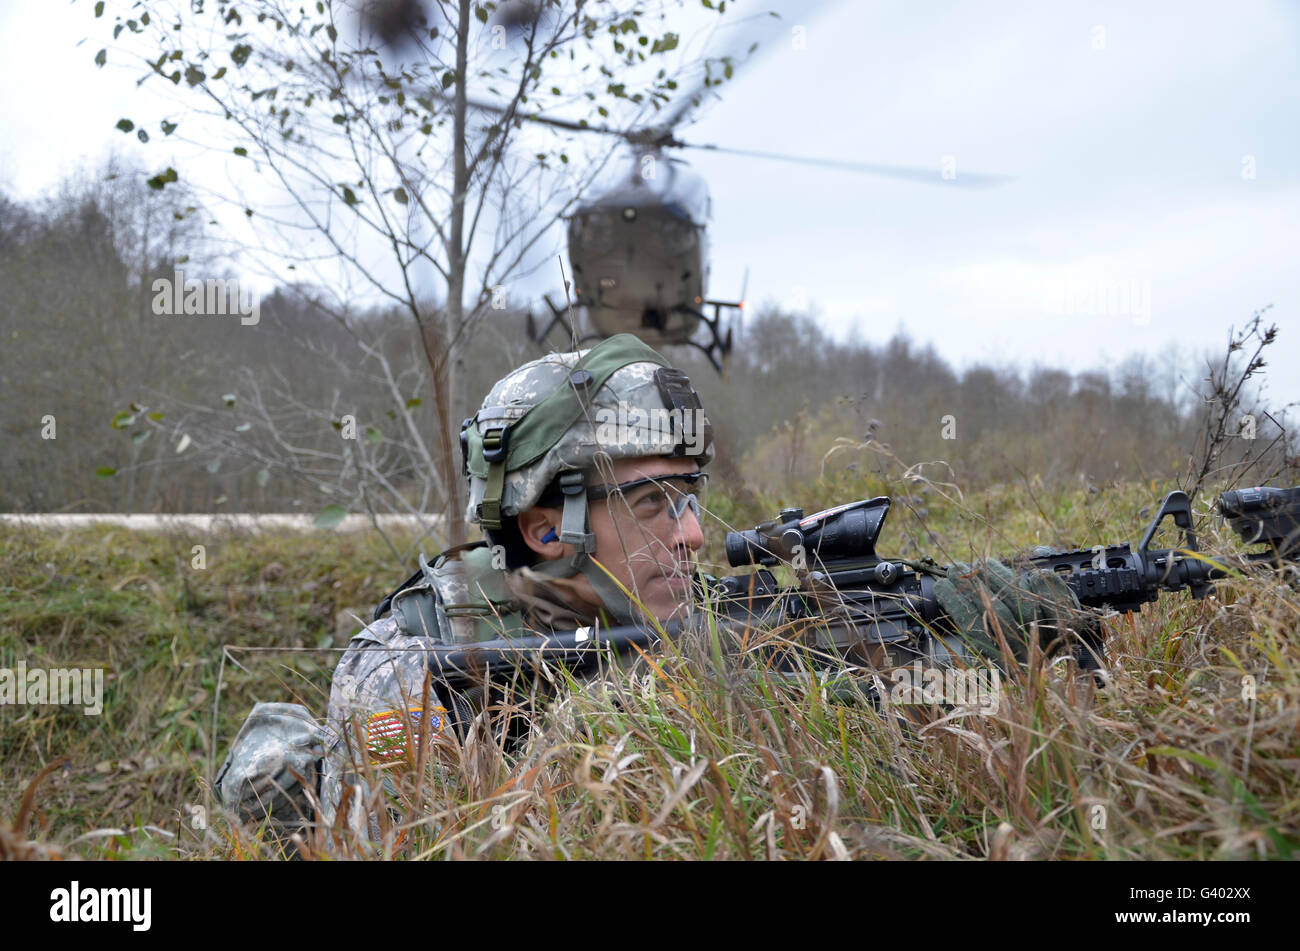 A U.S. Army Soldier pulls security during a situational training exercise. - Stock Image